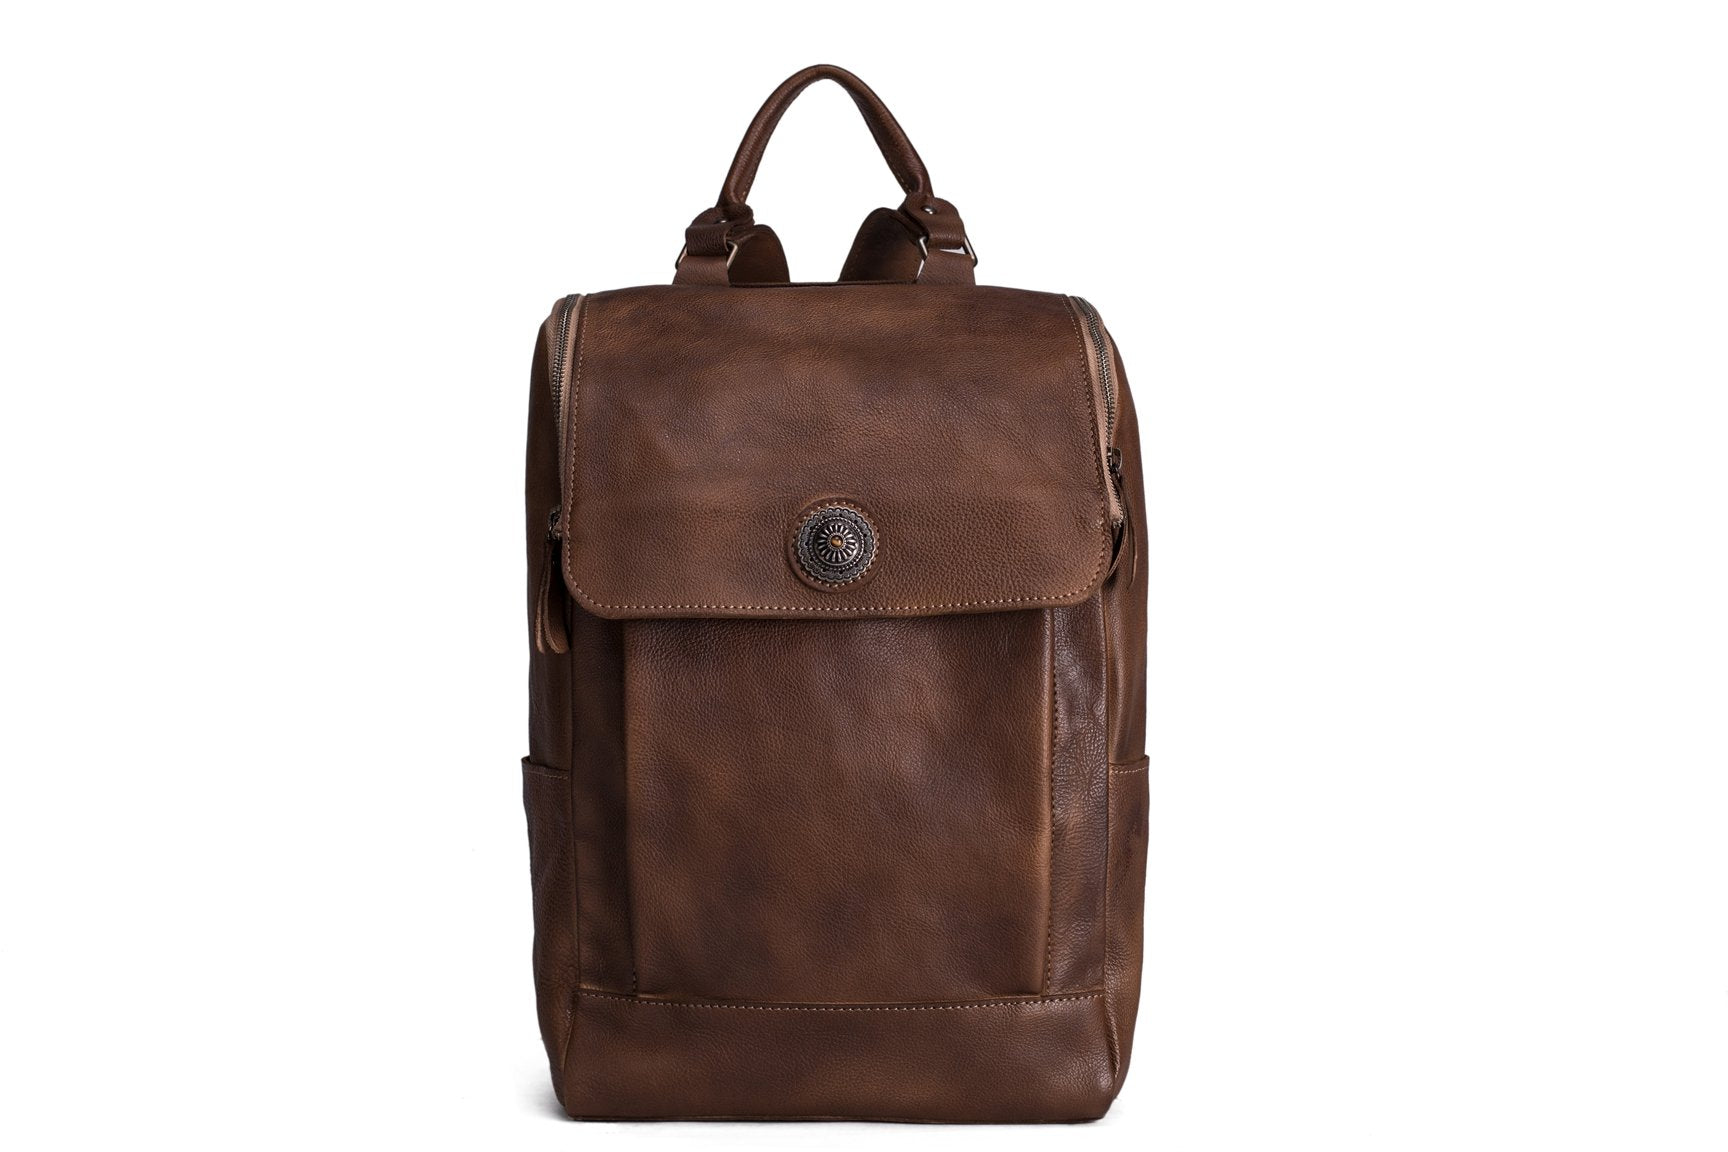 Handmade Vegetable Tanned Leather Backpack - Vintage Brown - Blue Sebe Handmade Leather Bags